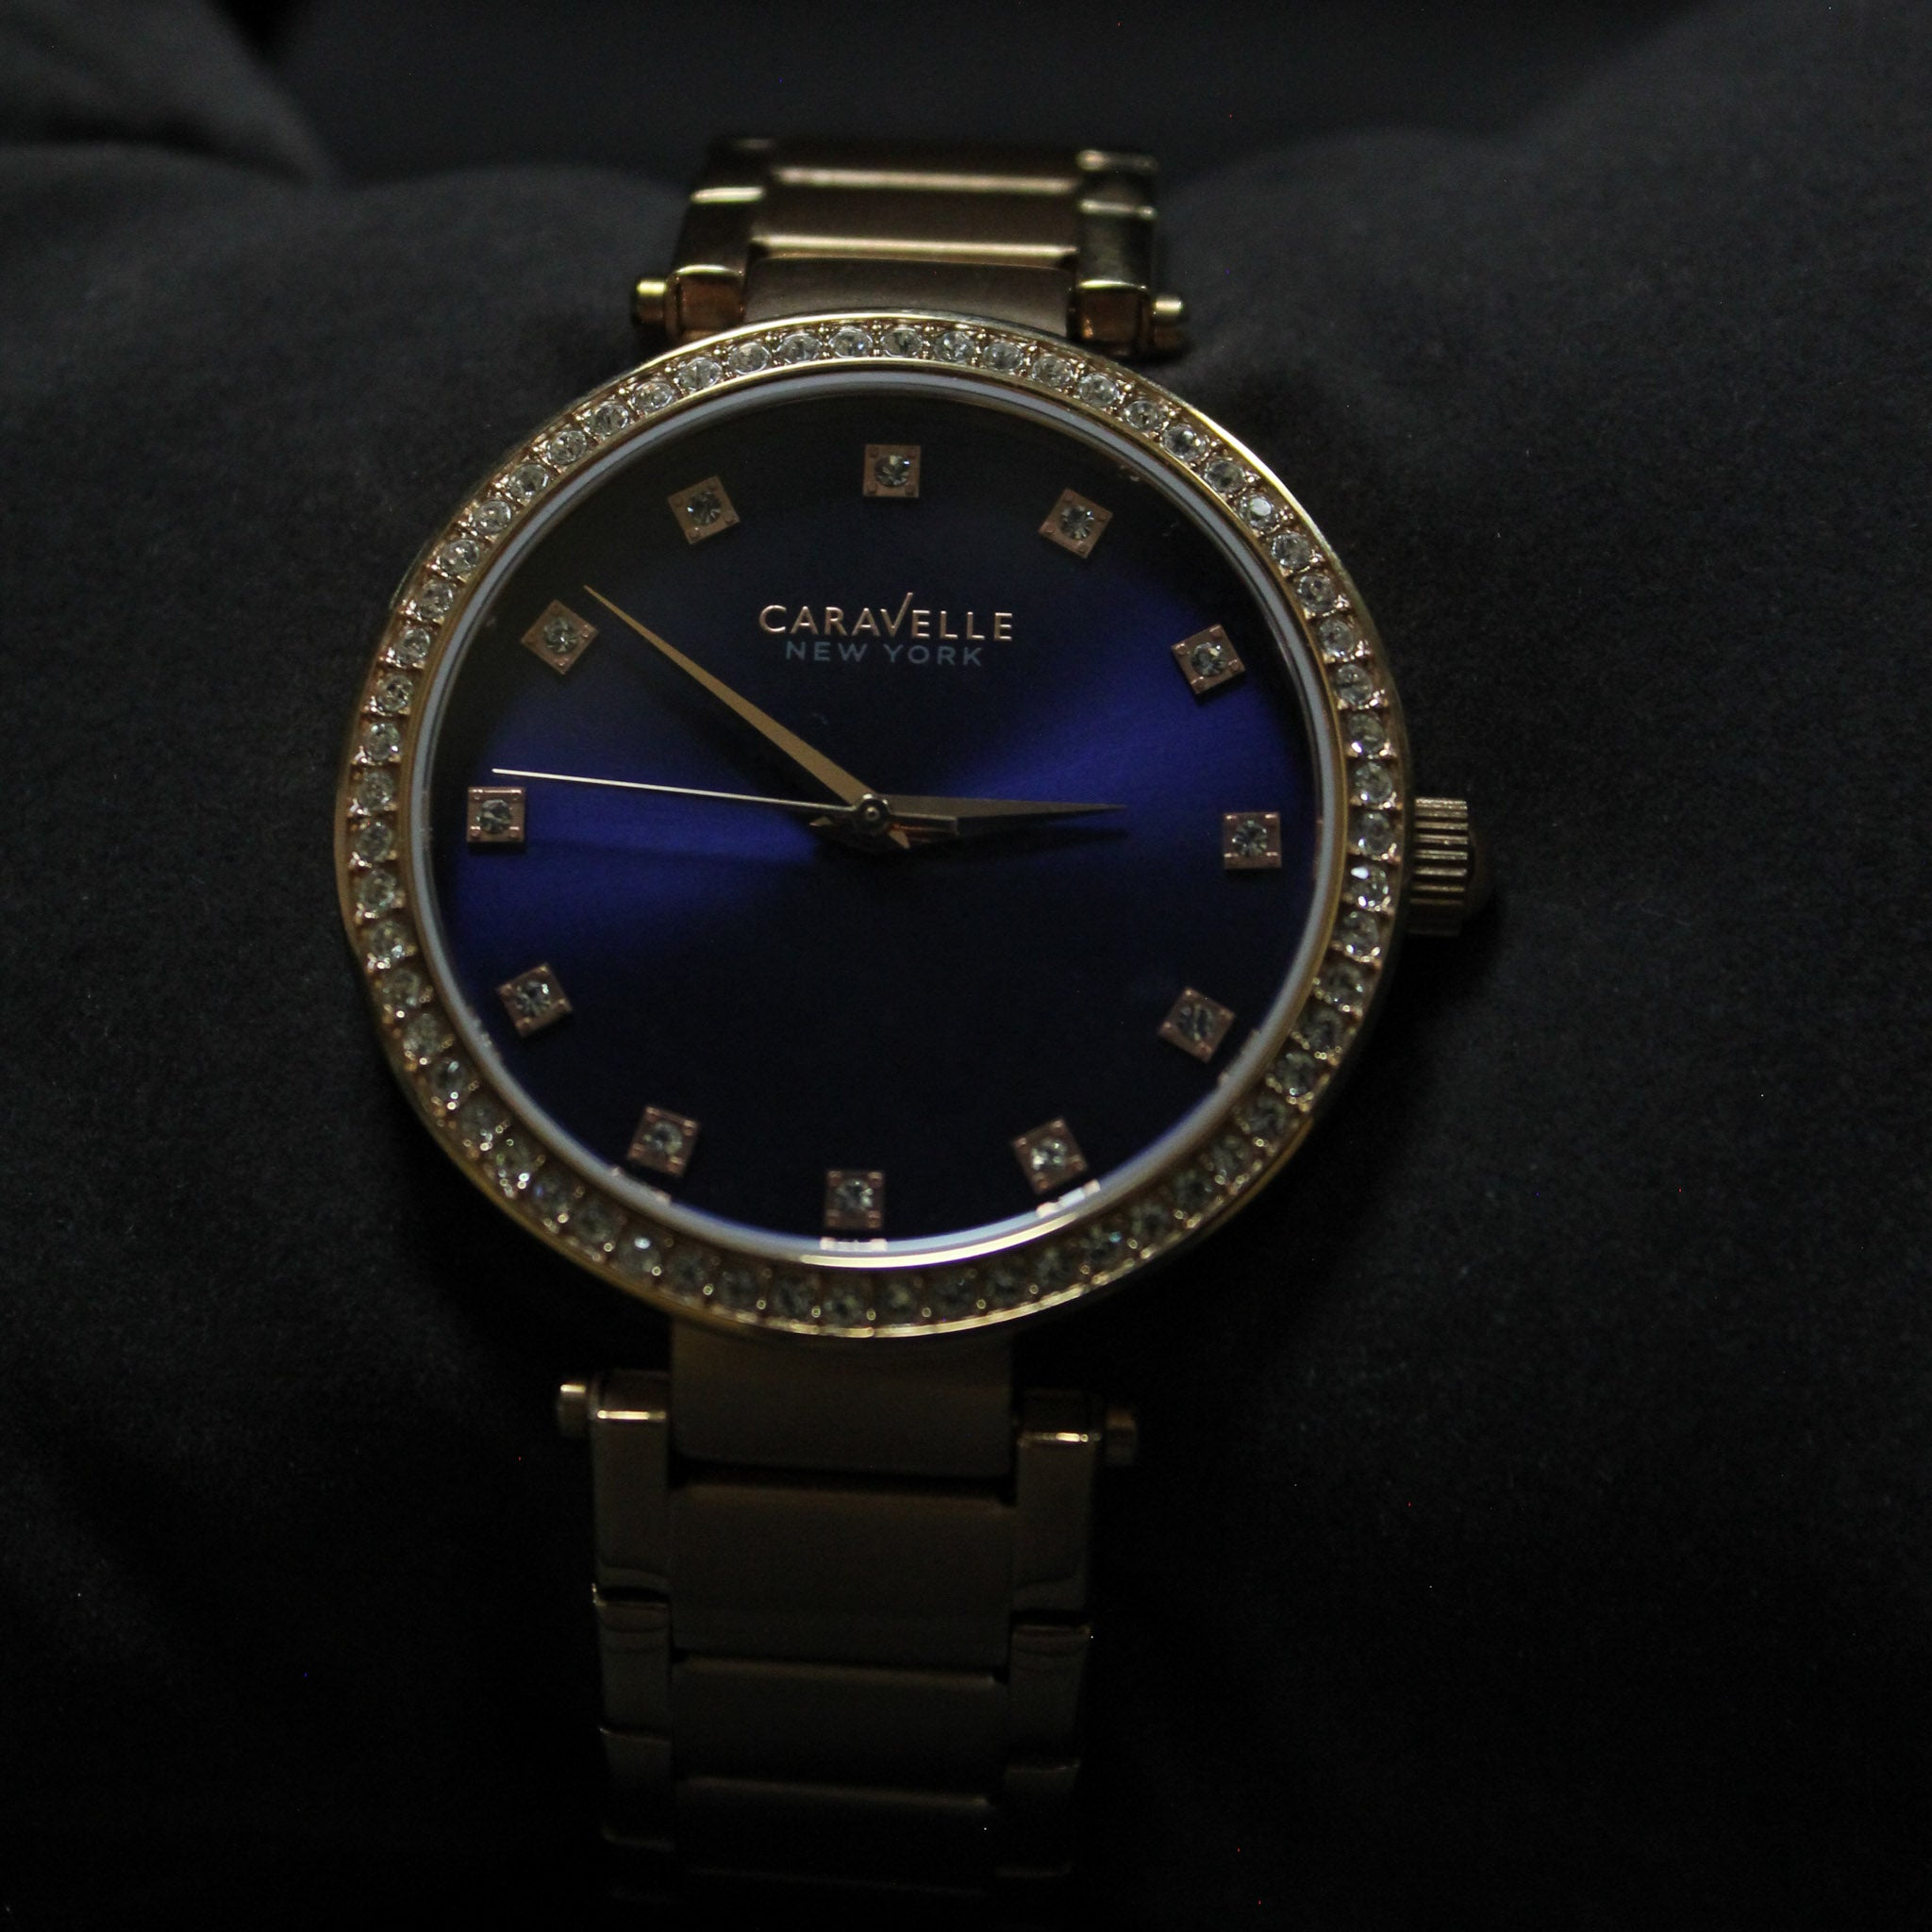 Deep Blue & Rosé Crystal Bracelet Watch | Caravelle New York